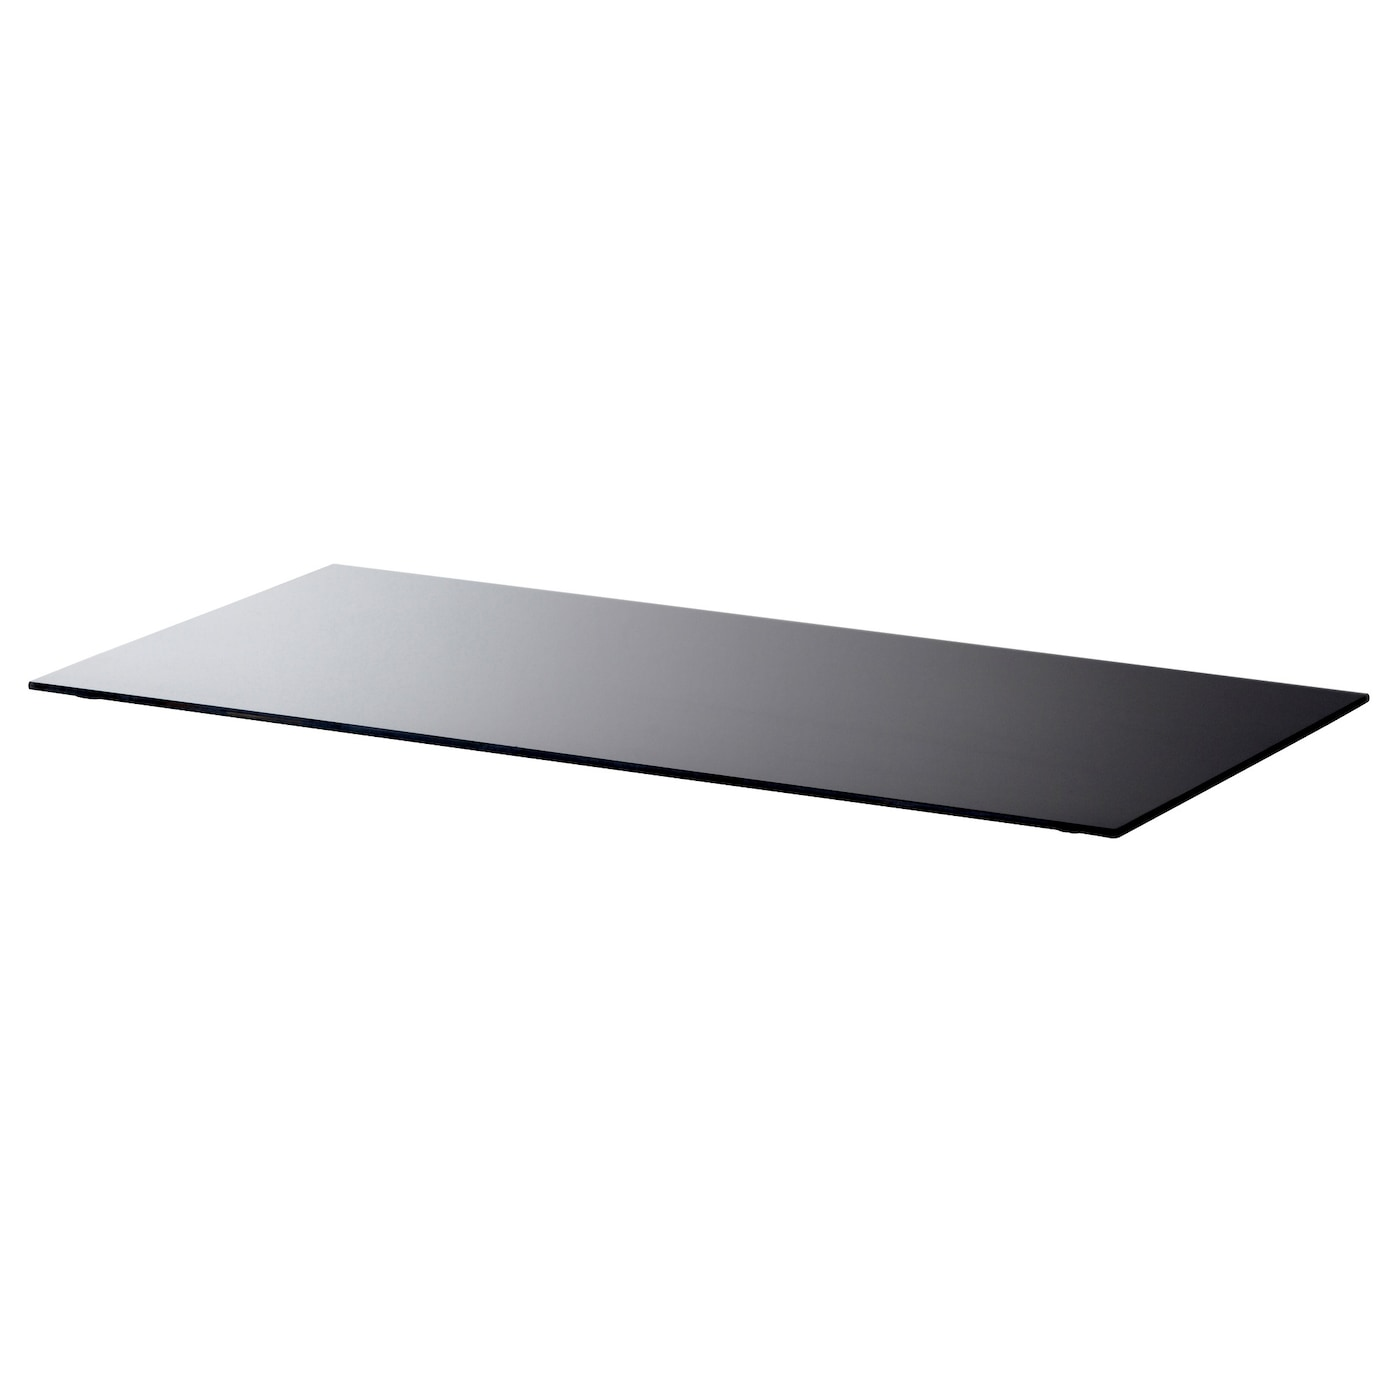 Glasholm table top glass black 99x52 cm ikea for Ikea glass table tops